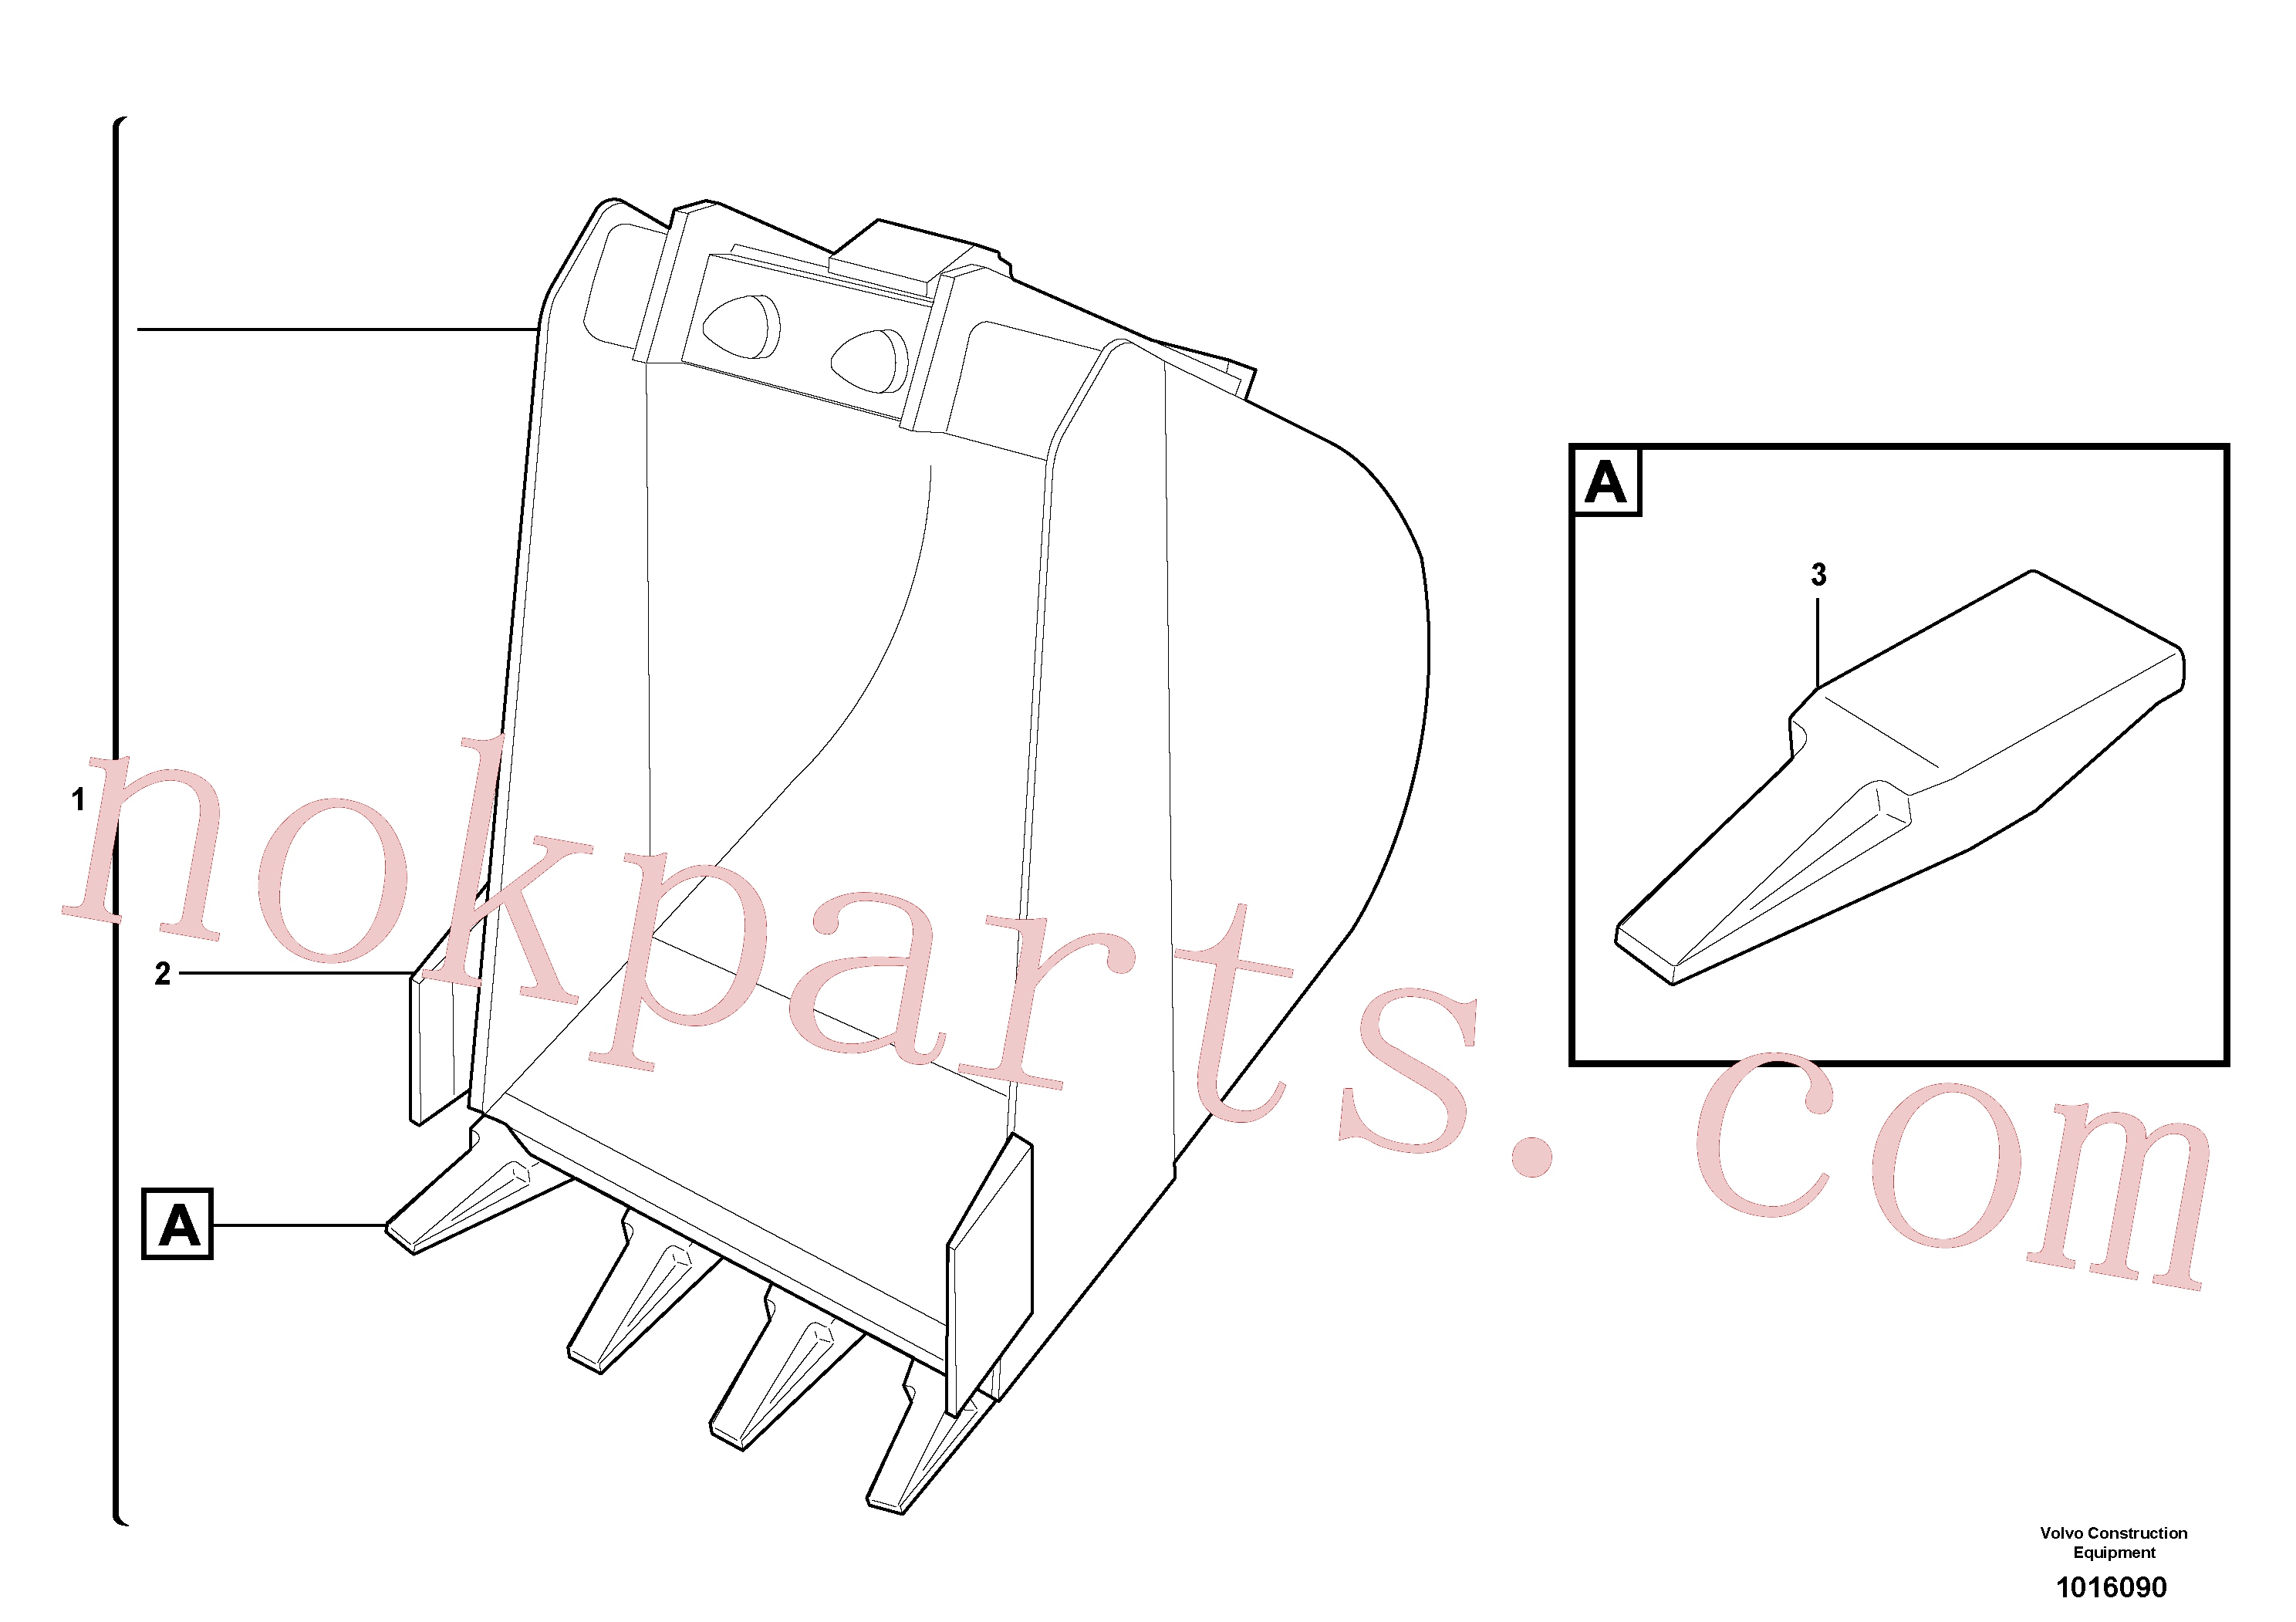 VOE11806677 for Volvo Buckets for Quickfit(1016090 assembly)